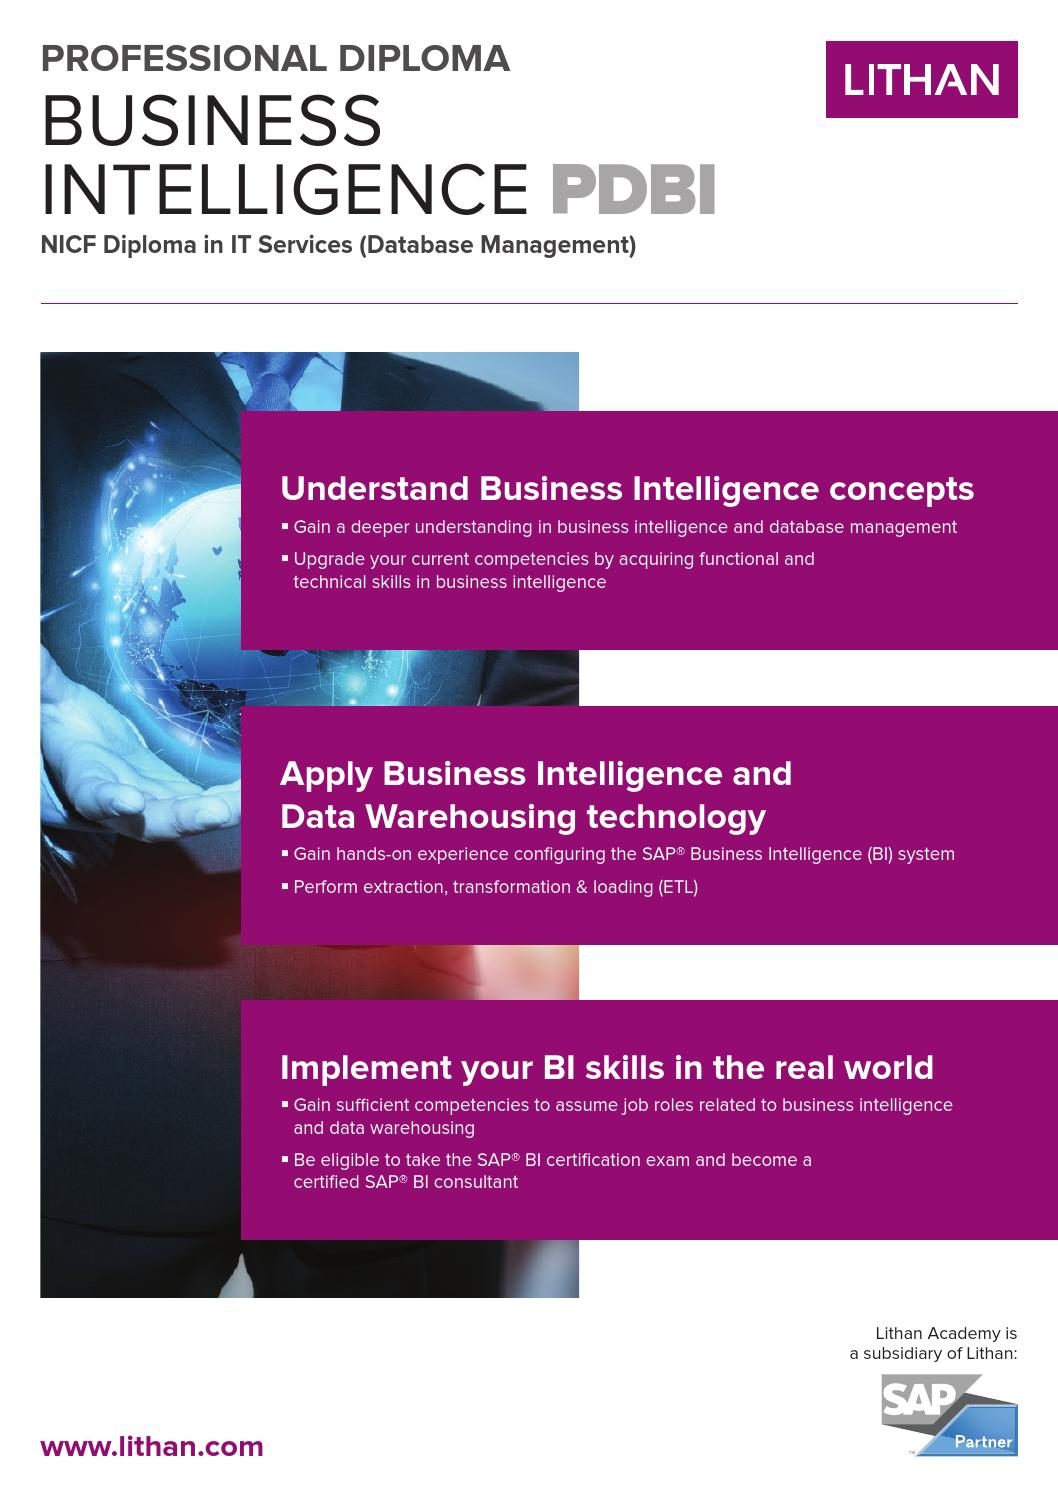 Professional diploma in business intelligence sg by lithan hall professional diploma in business intelligence sg by lithan hall issuu 1betcityfo Gallery